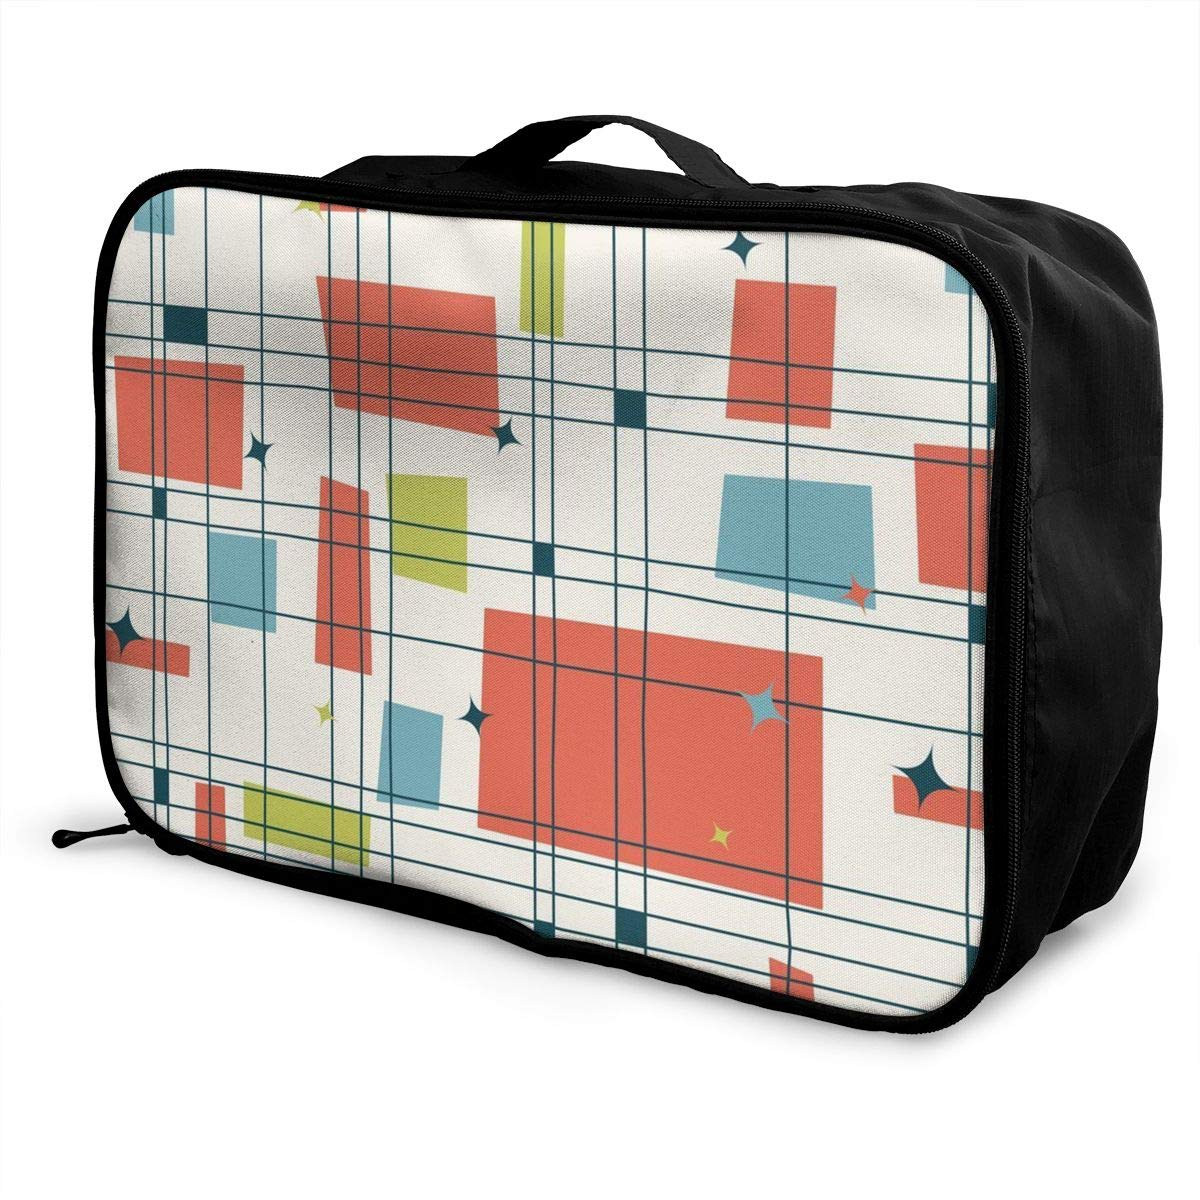 Lightweight Large Capacity Duffel Portable Luggage Bag Abstract Mid Century Modern Grid Travel Waterproof Foldable Storage Carry Tote Bag